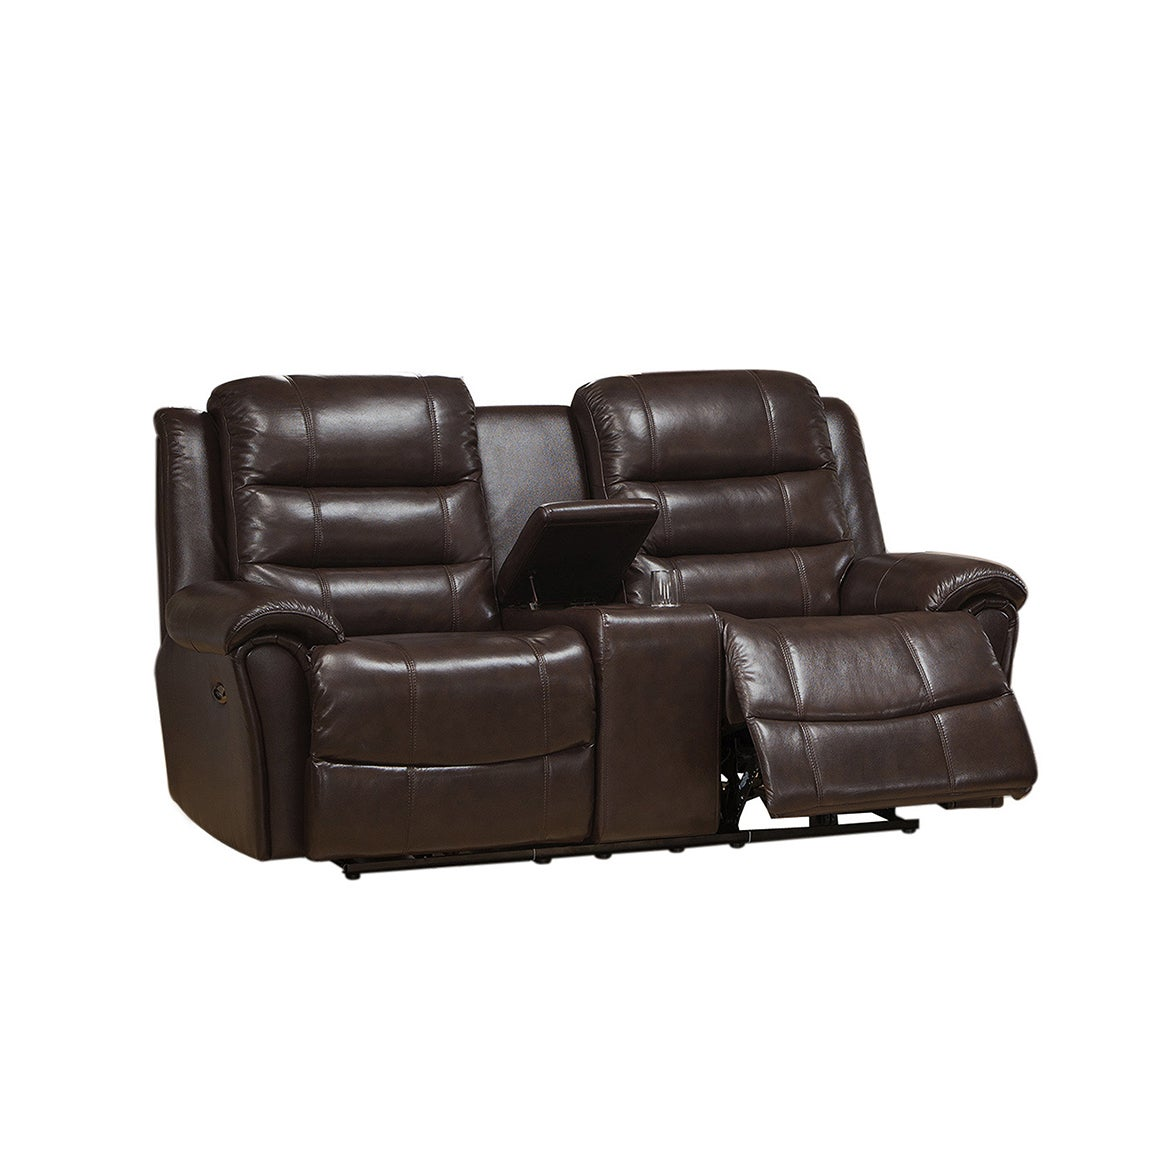 Astoria Leather Reclining Sofa Loveseat And Chair Set Free Shipping Today 12322060